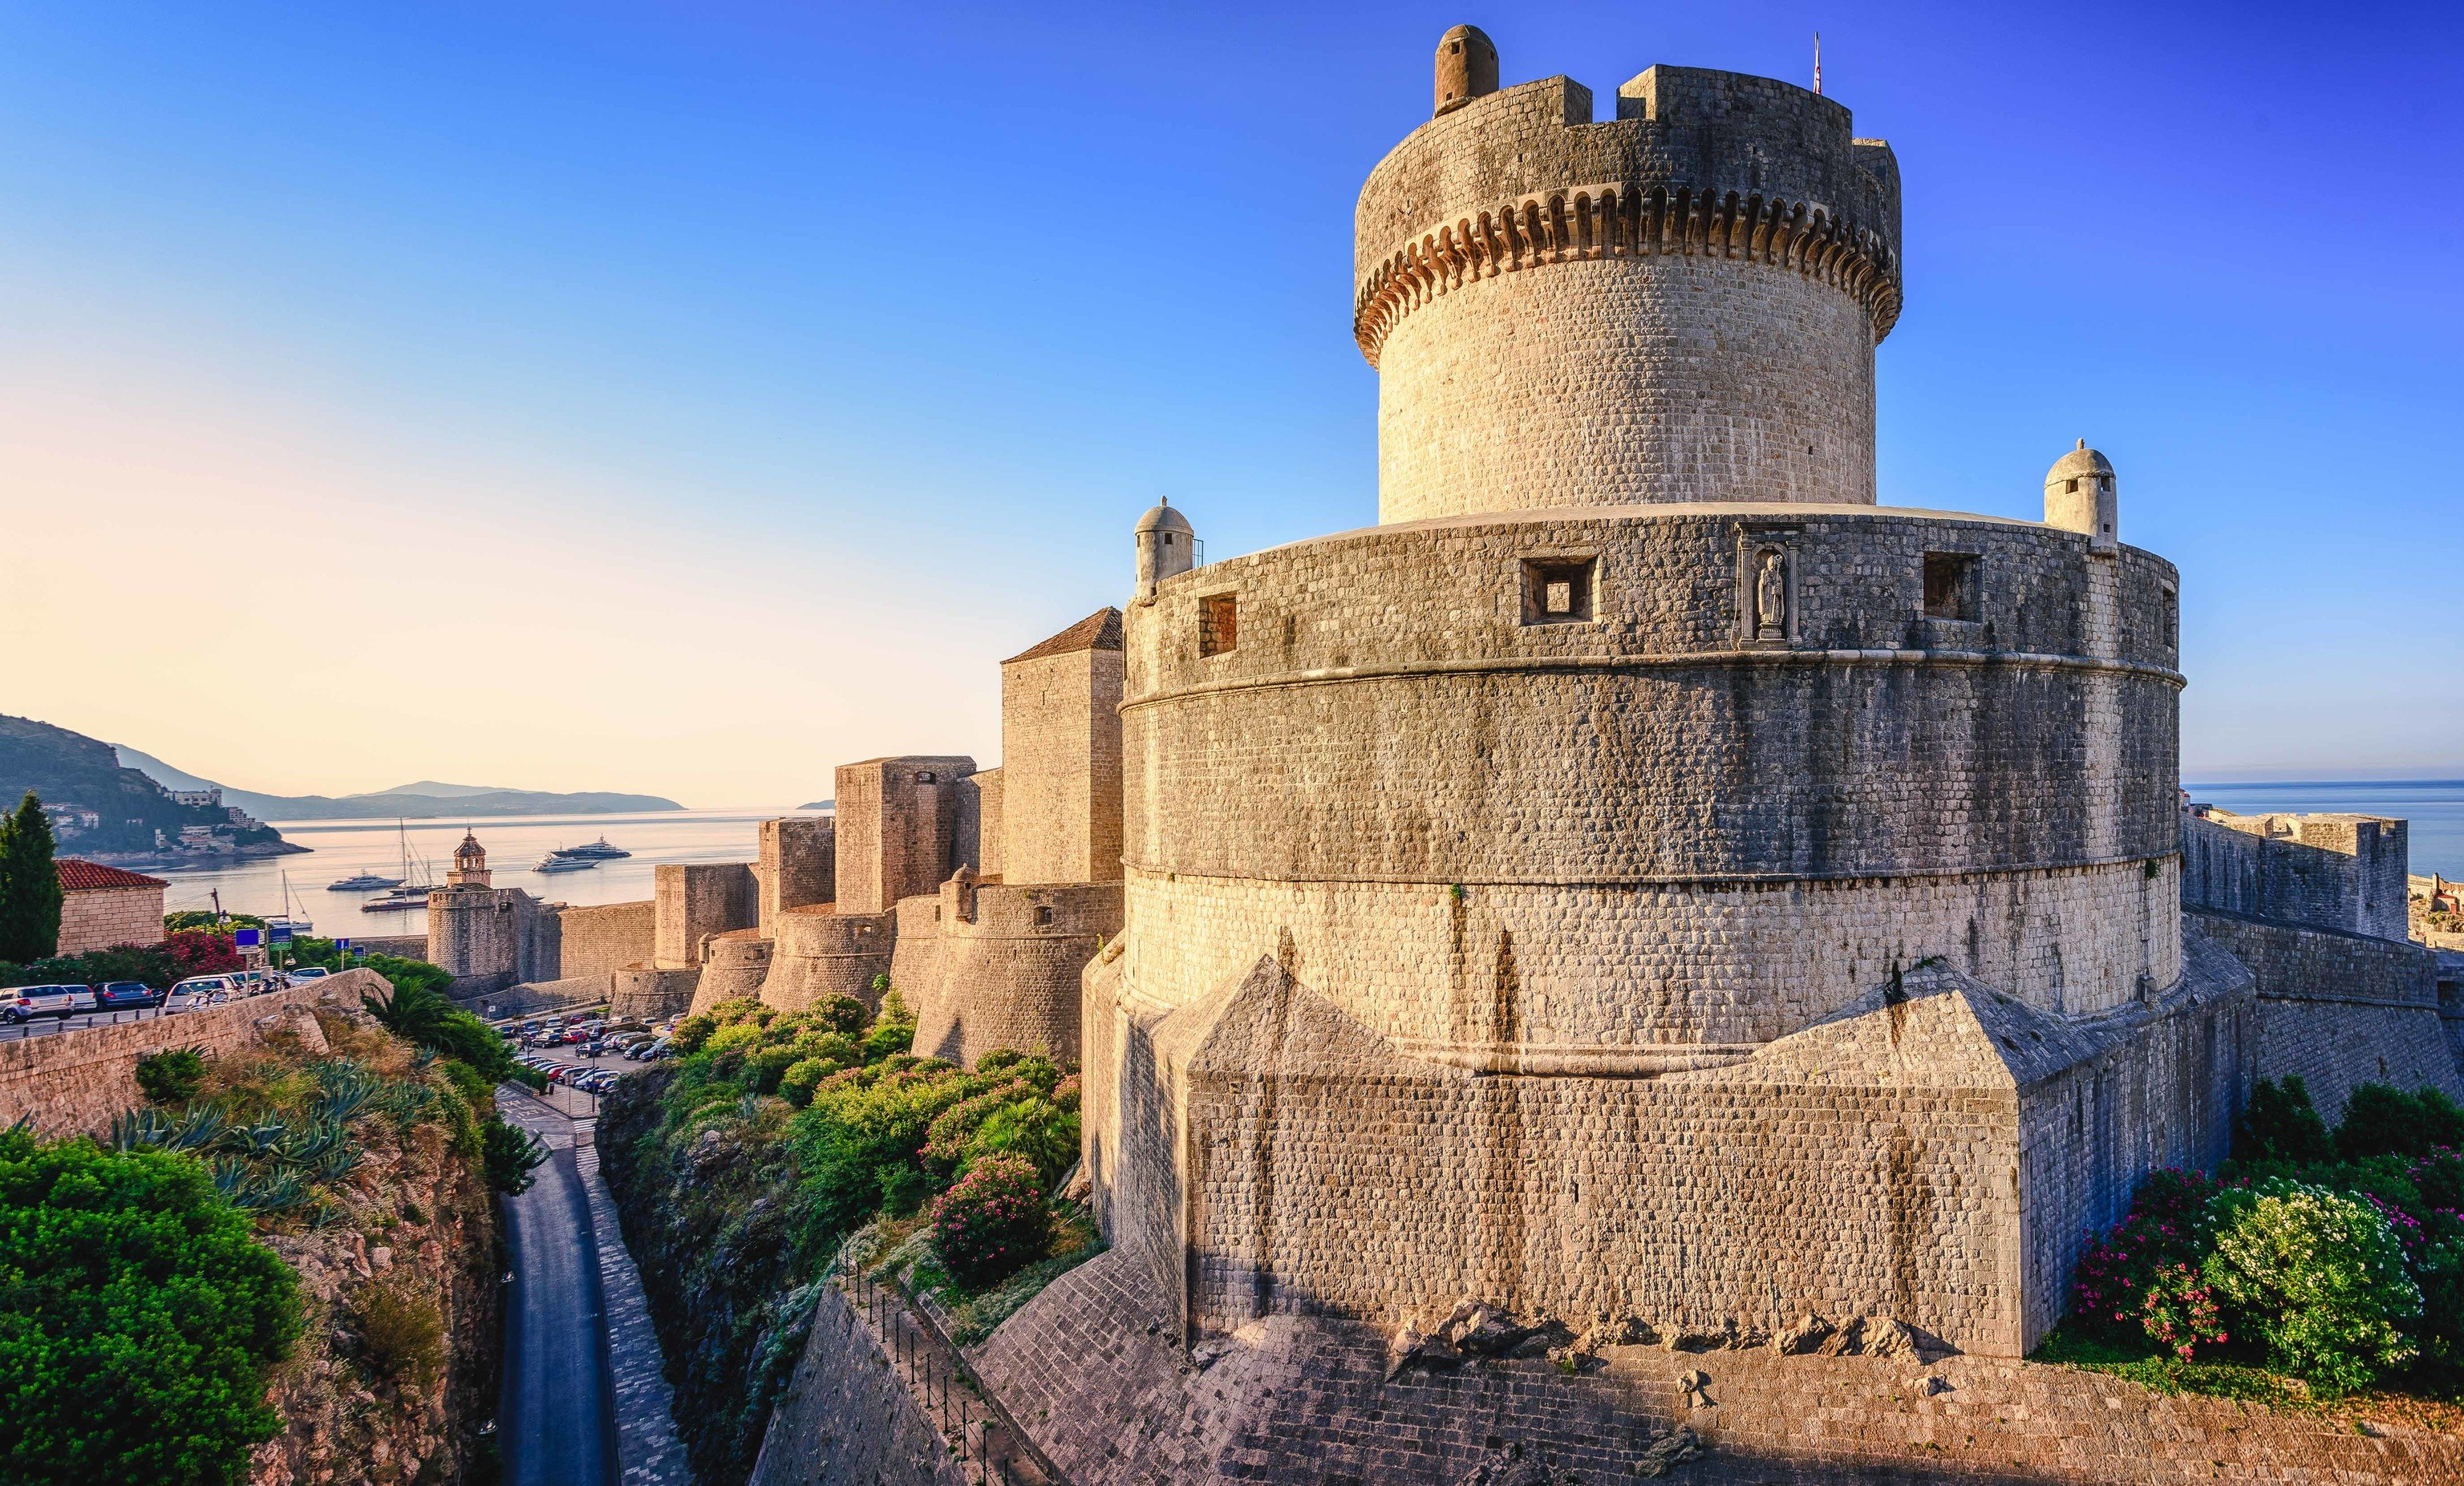 Offbeat sky outdoor building historic site landmark fortification wall ancient history castle Town history tourism archaeological site middle ages château tourist attraction evening tower City tours Ruins medieval architecture monument unesco world heritage site cloud stone